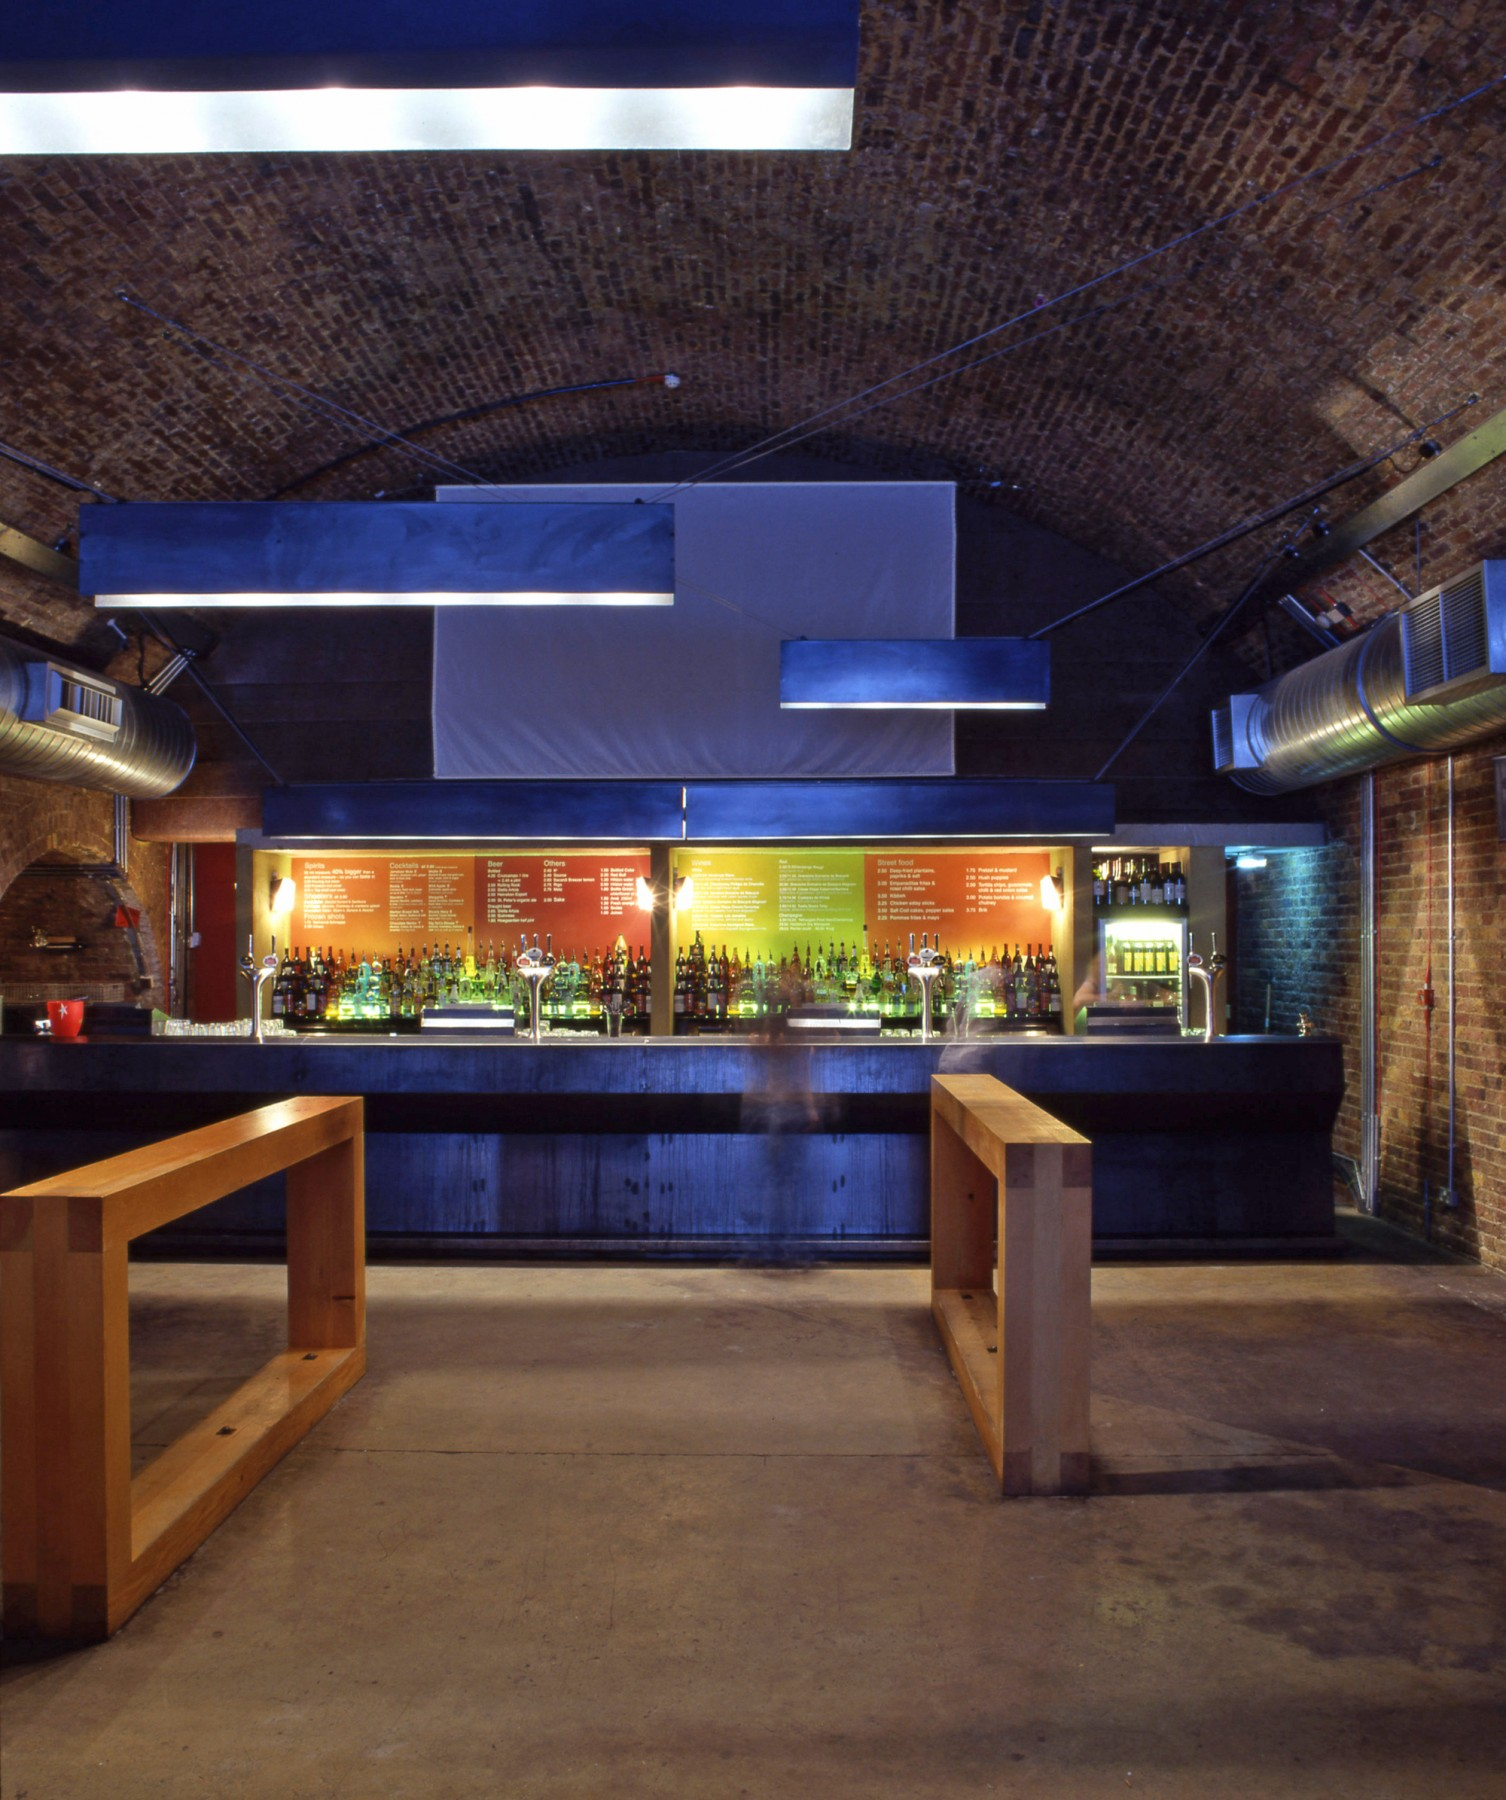 Cargo-East-London-Shoreditch-cultural-scene-bar-restaurant-urban-disused-railway-yard-entertainment-venue-events-Jamie-Fobert-Architects-4